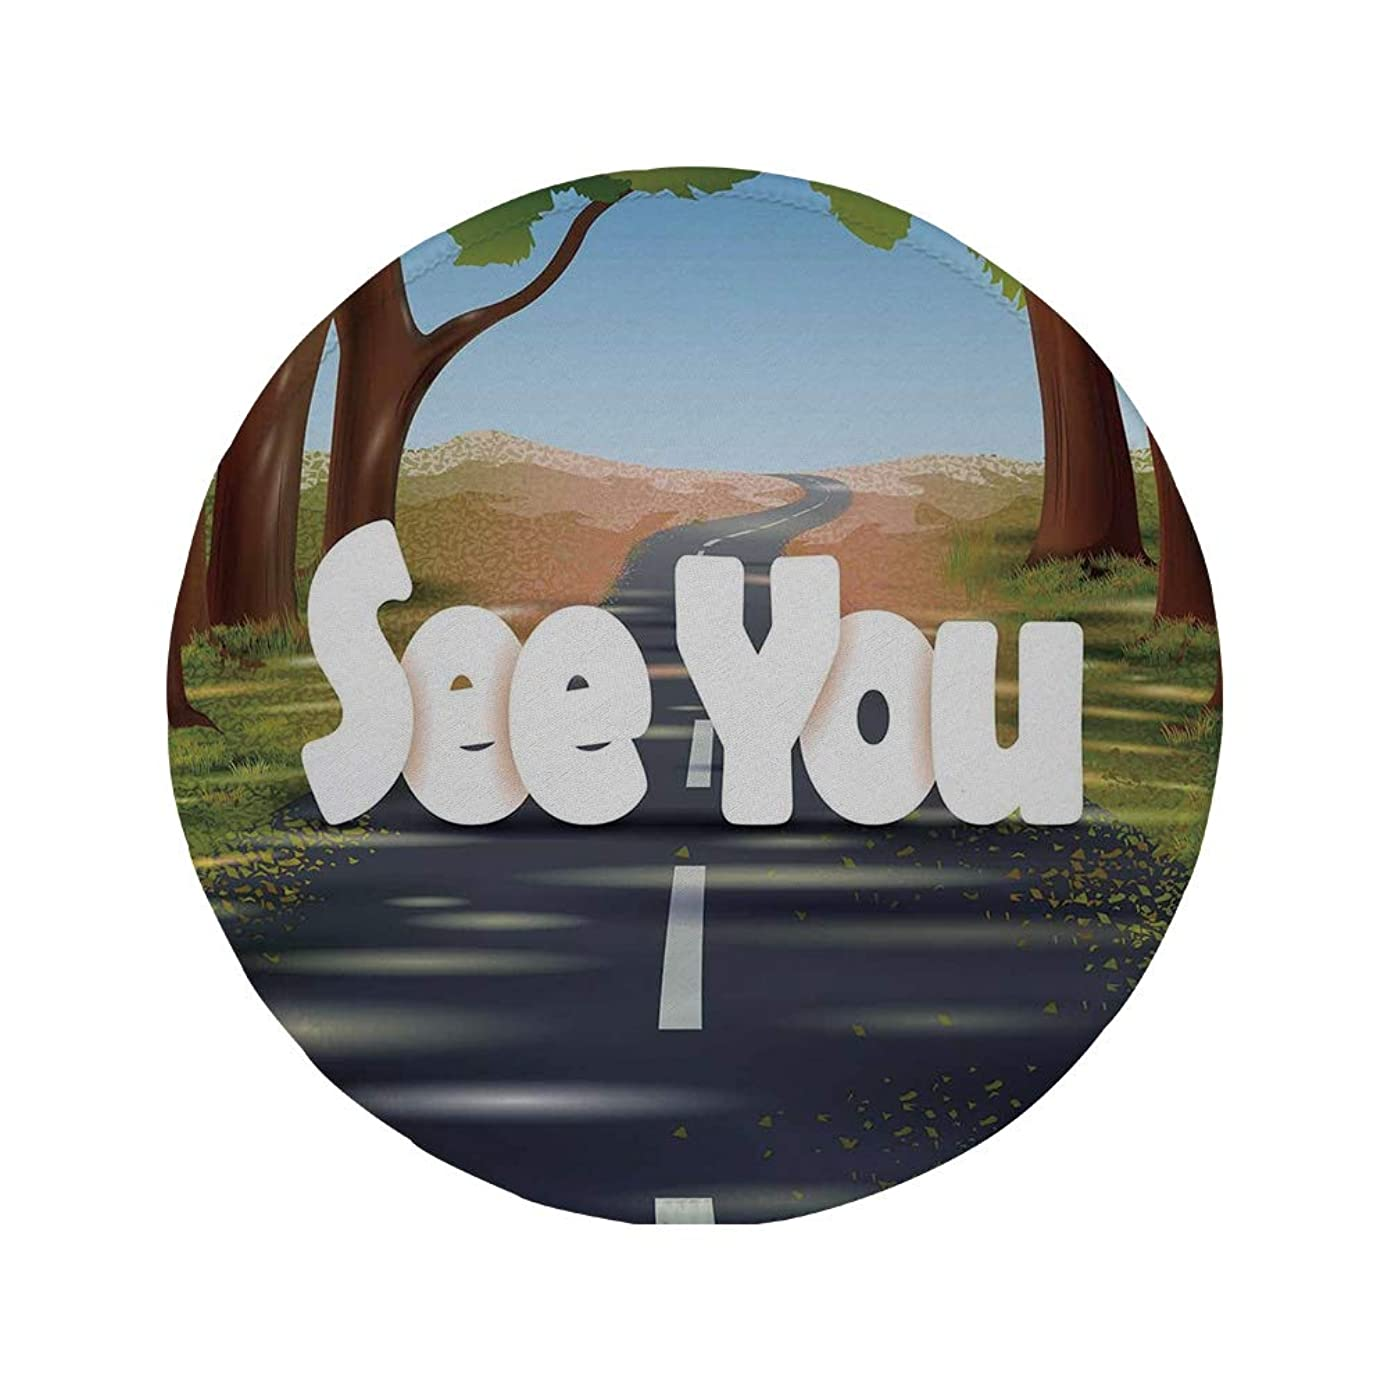 Non-Slip Rubber Round Mouse Pad,Going Away Party Decorations,Cartoon Highway Empty Open Road with Trees See You,Green Brown Slate Blue,11.8